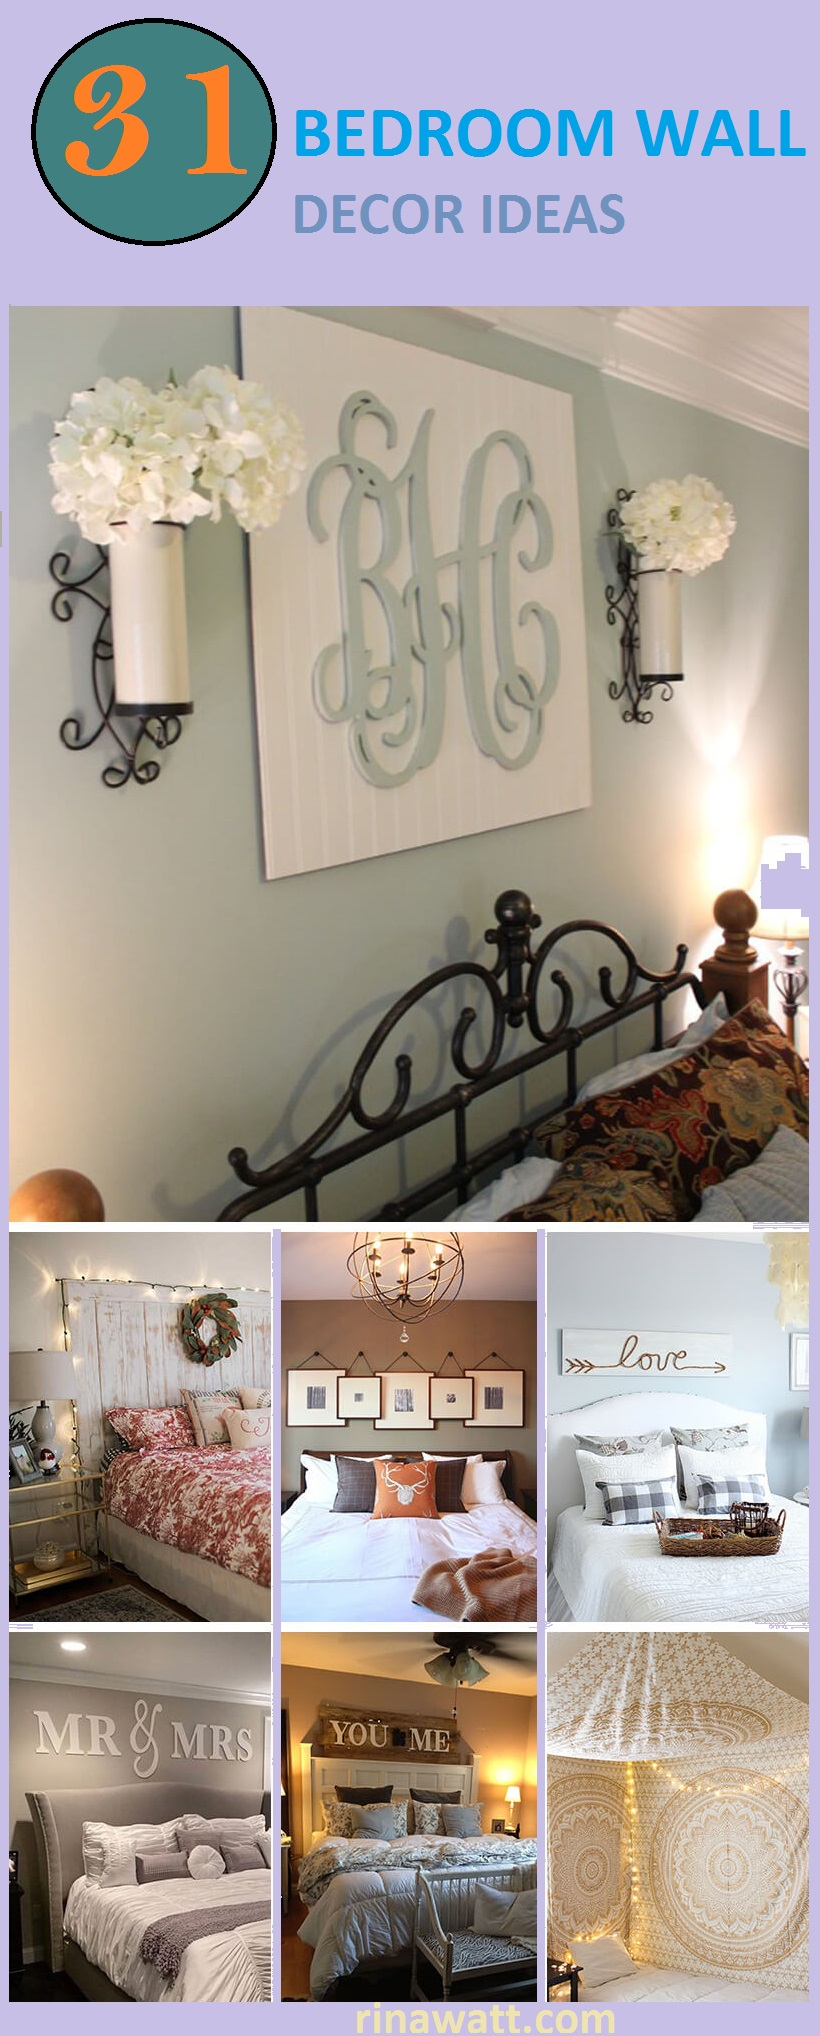 25 Classy Bedroom Wall Decor Ideas To Style Up Your Space Rina